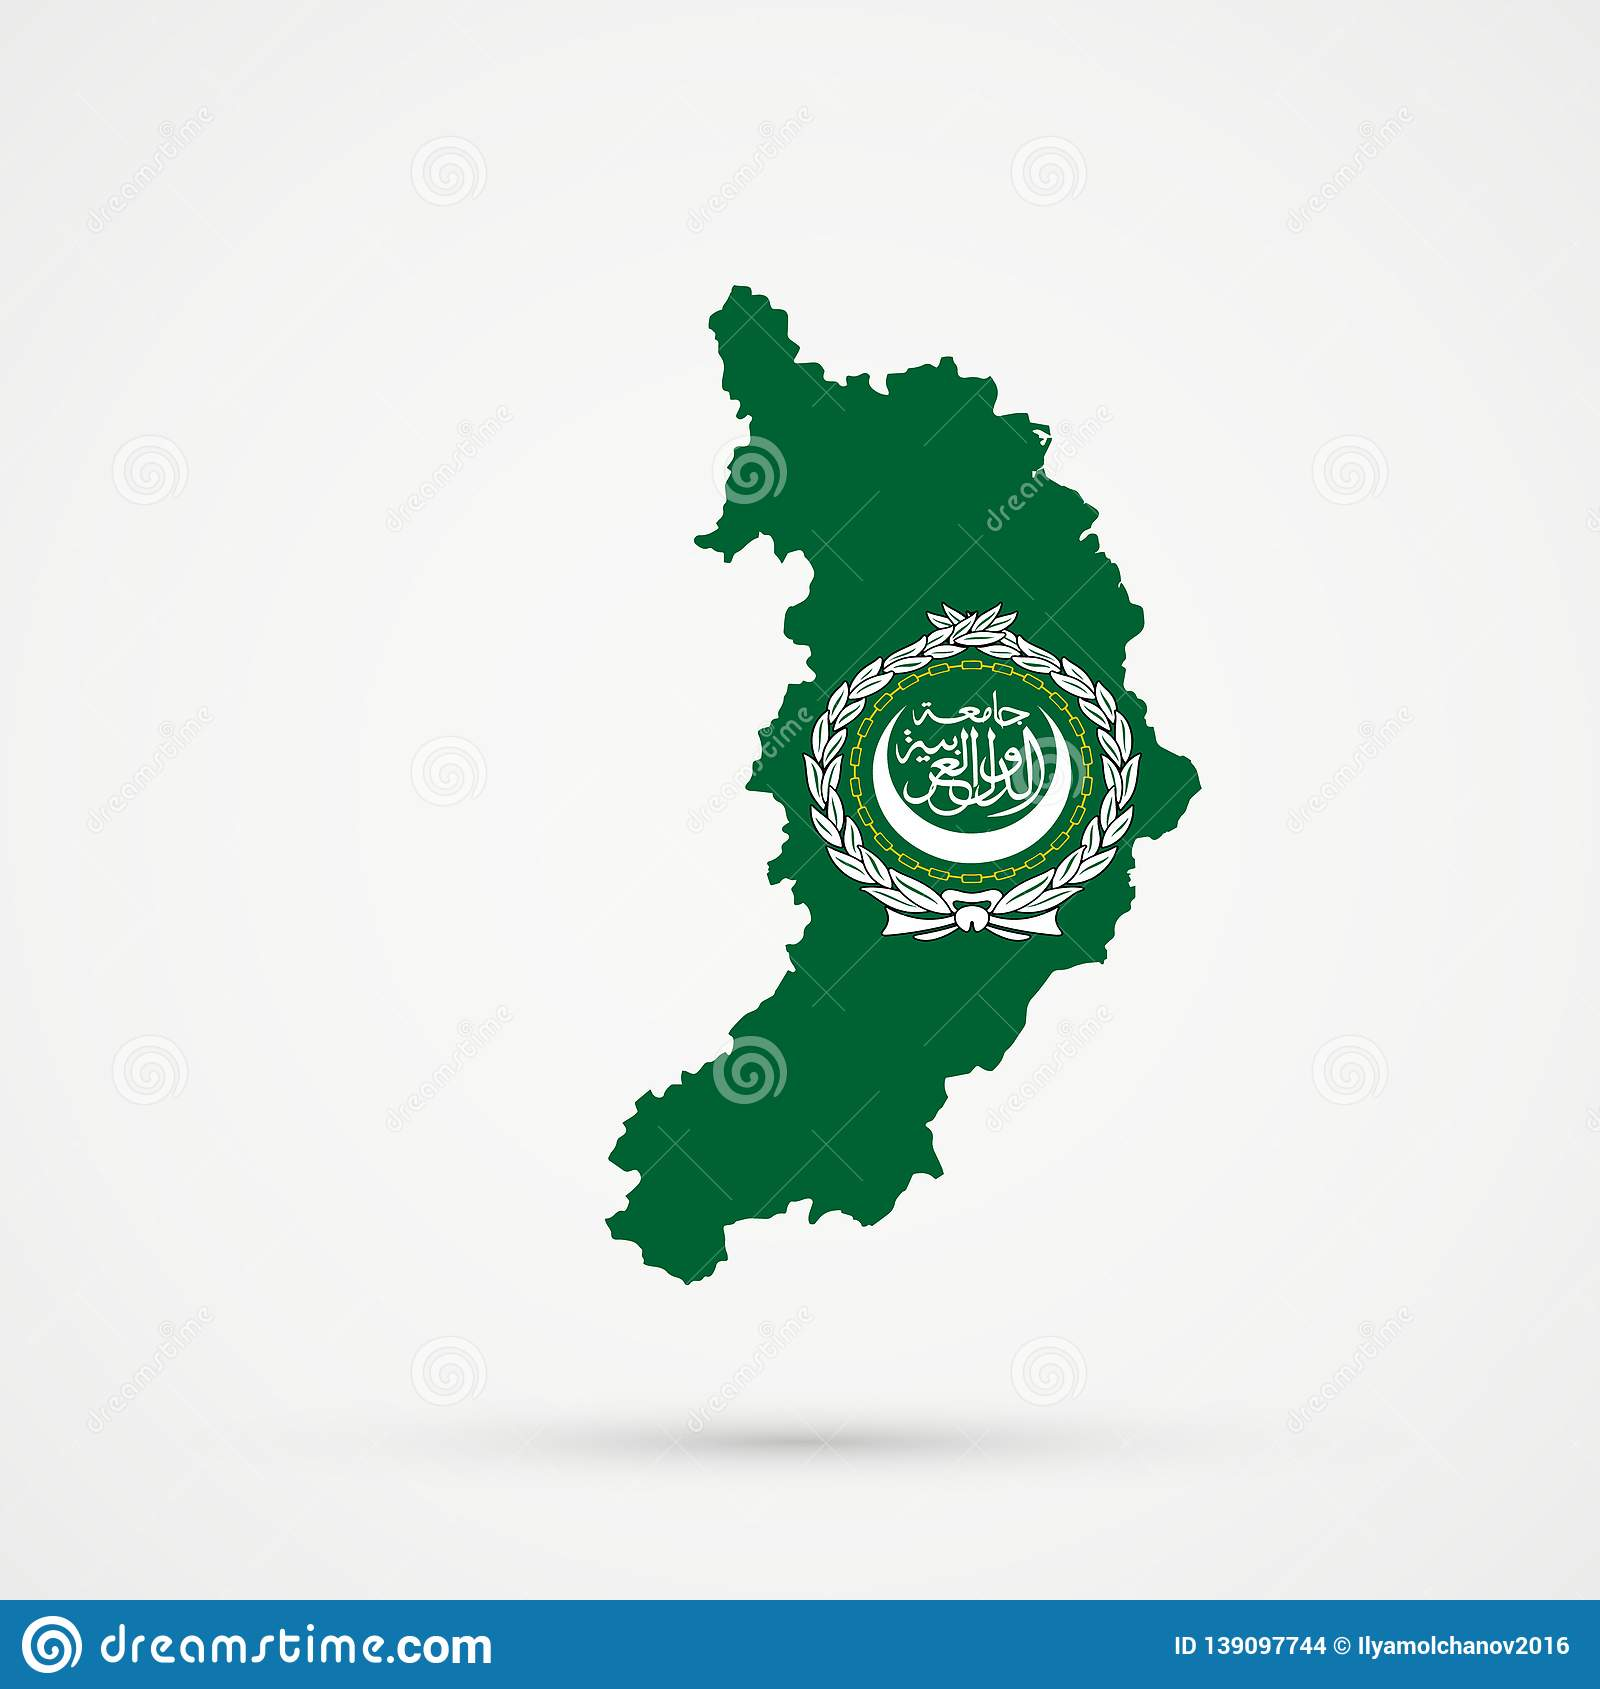 Picture of: Republic Of Khakassia Map In Arab League Flag Colors Editable Vector Stock Vector Illustration Of Abstract Country 139097744